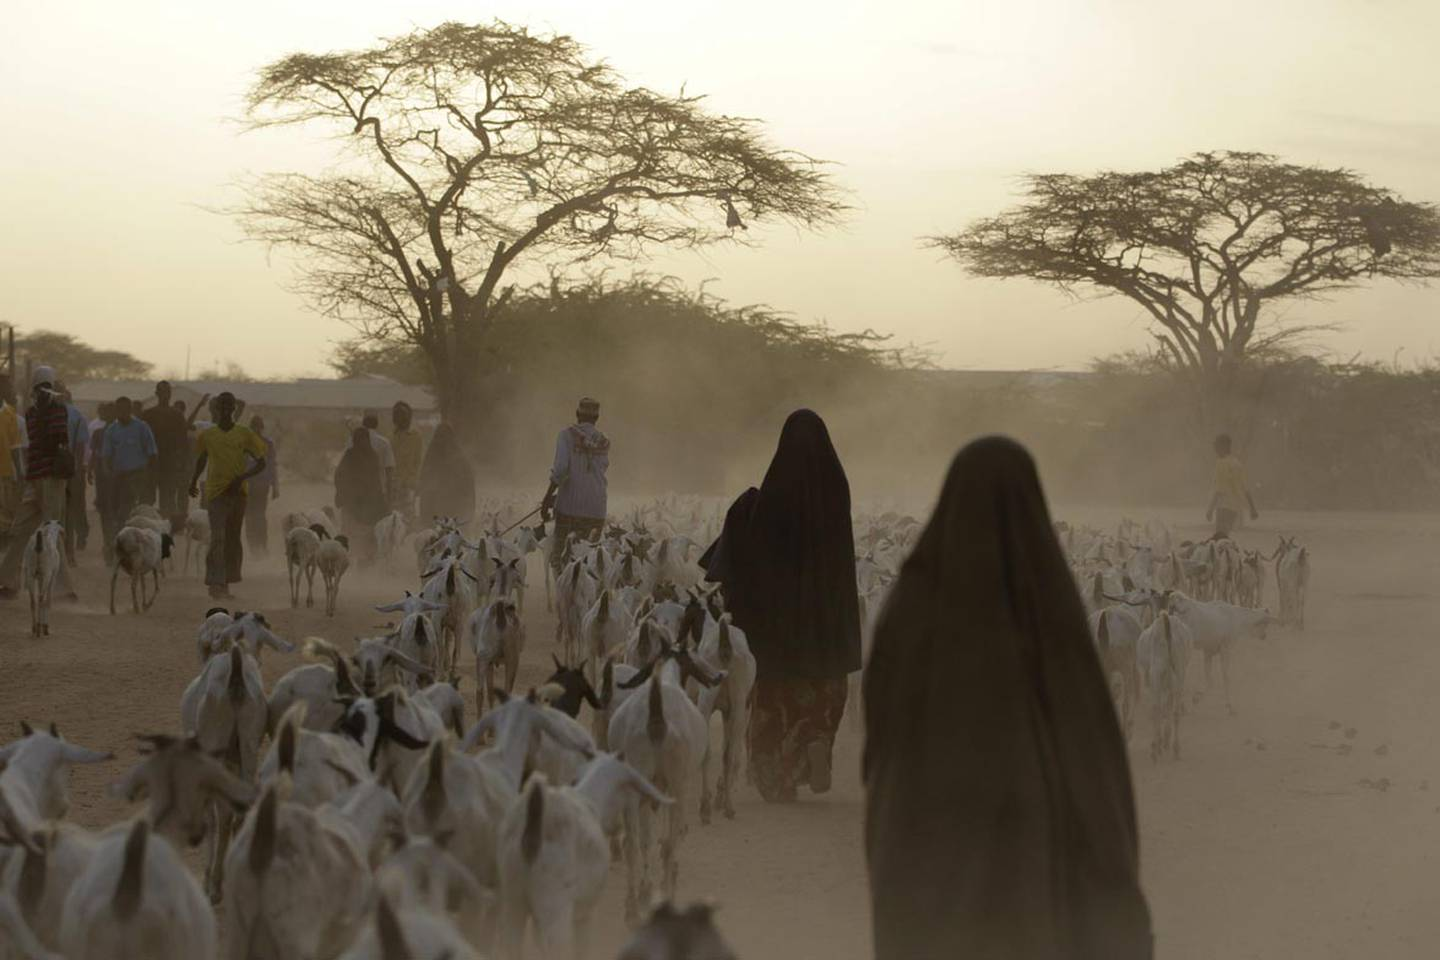 """Somali refugees lead their herds of goats home for the night, inside Dagahaley Camp, outside Dadaab, Kenya, Sunday, July 10, 2011. U.N. refugee chief Antonio Guterres said Sunday that drought-ridden Somalia is the """"worst humanitarian disaster"""" in the world after meeting with refugees who endured unspeakable hardship to reach the world's largest refugee camp in Dadaab, Kenya. (AP Photo/Rebecca Blackwell)"""